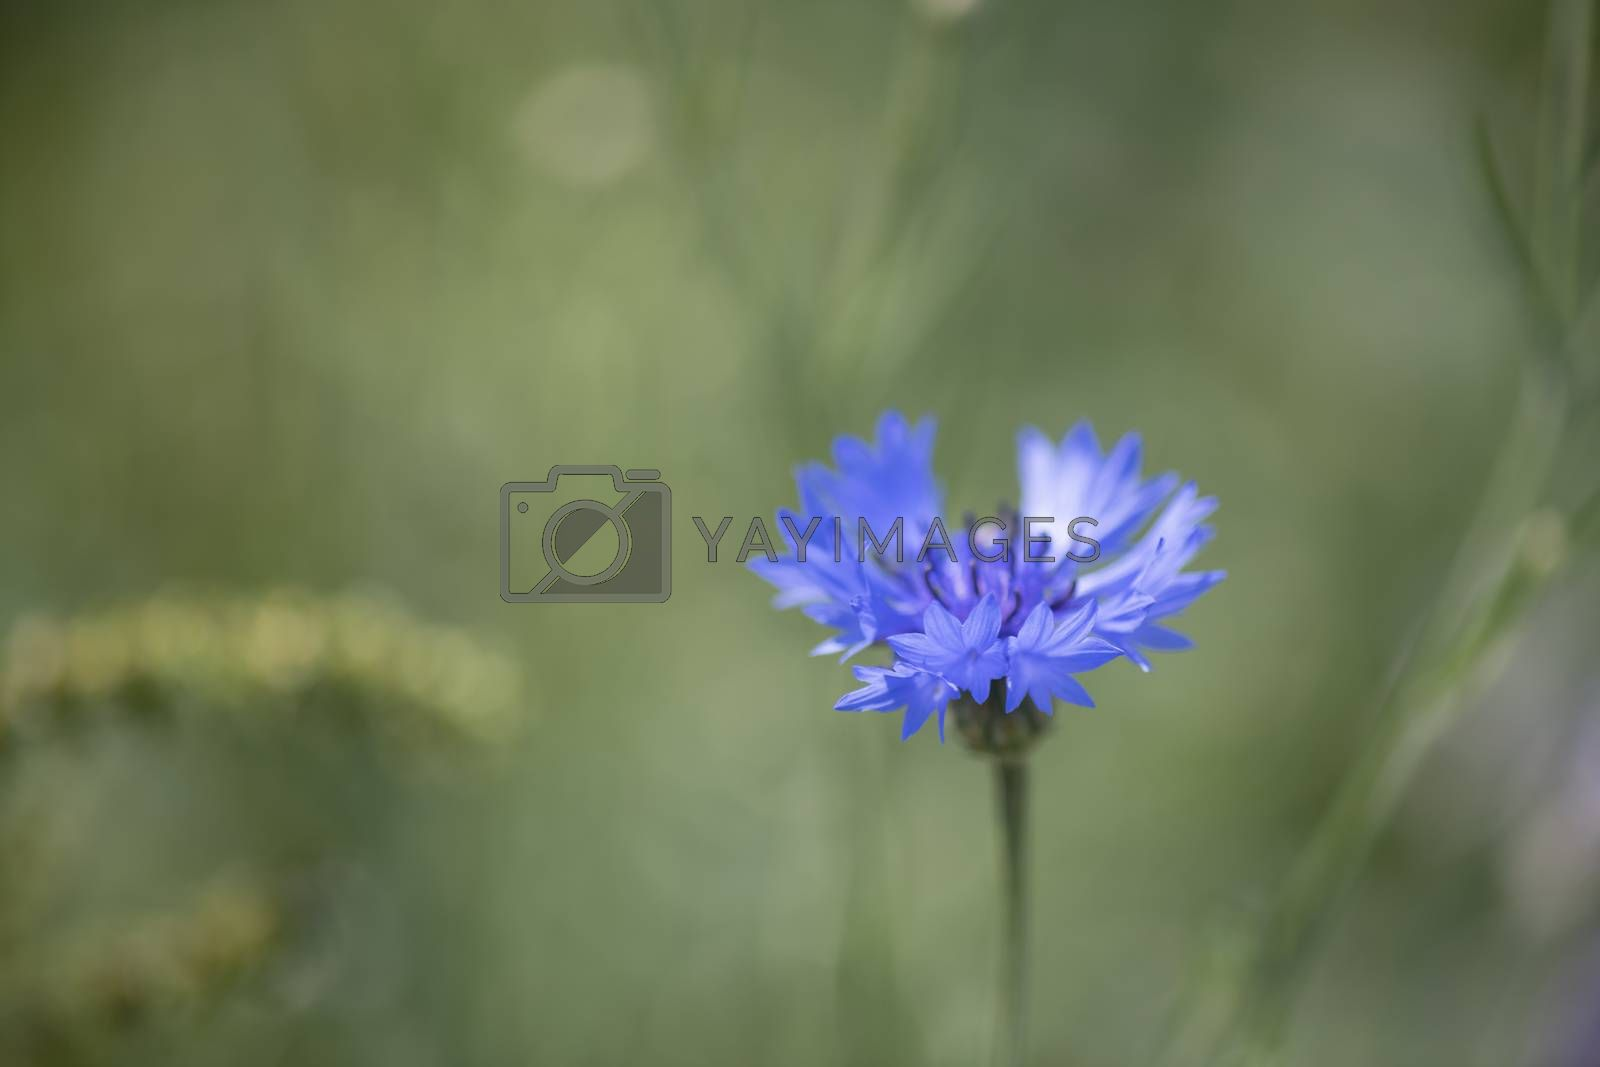 Painted bokeh  by Tofotografie